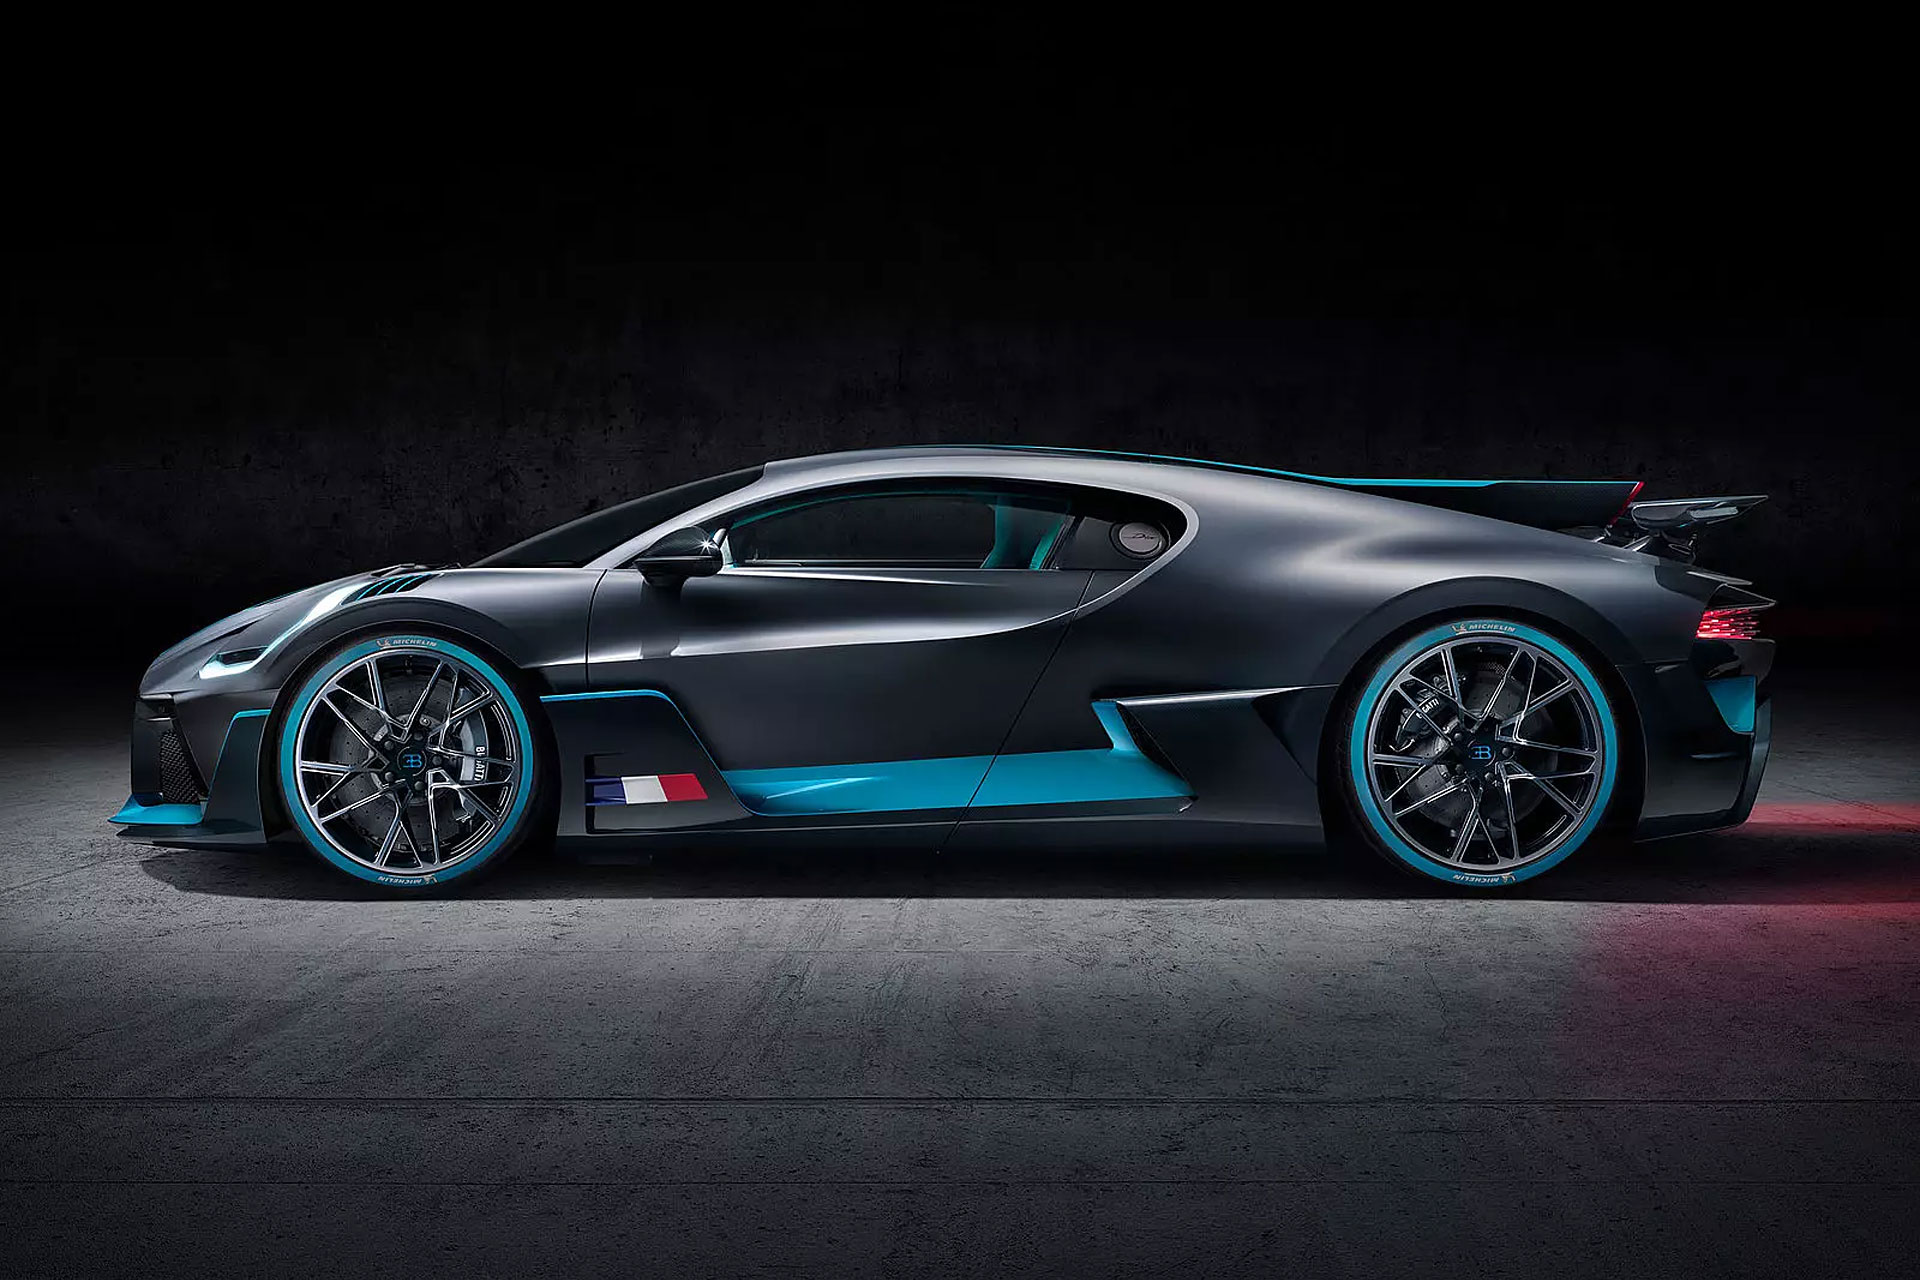 Visit LFMMAG.COM for more about the sinister Bugatti Divo ...